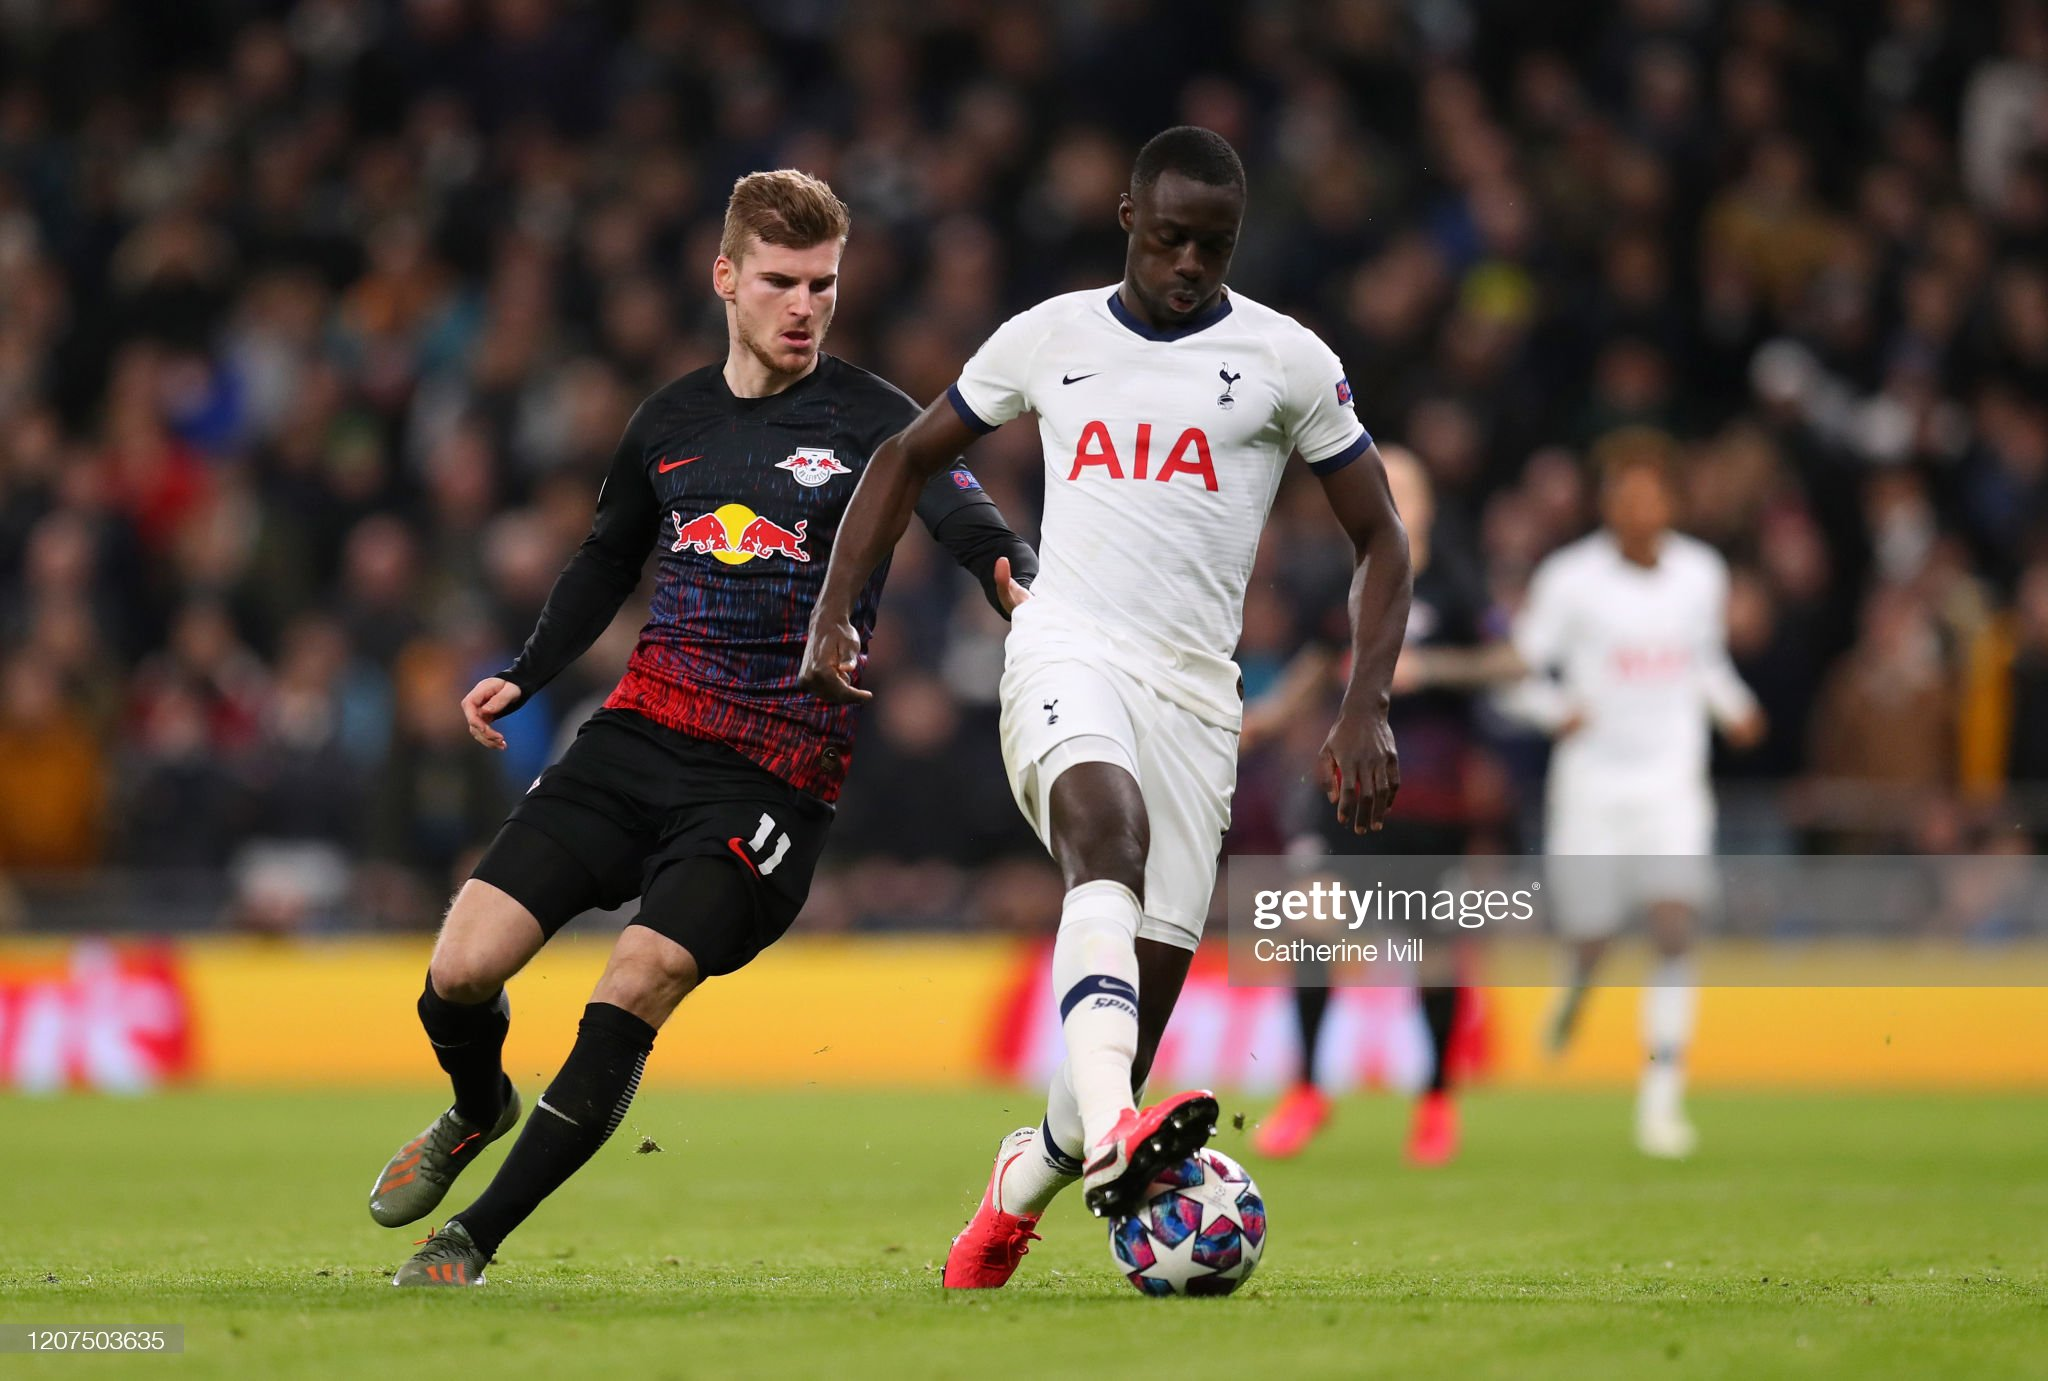 RB Leipzig v Tottenham Preview, prediction and odds